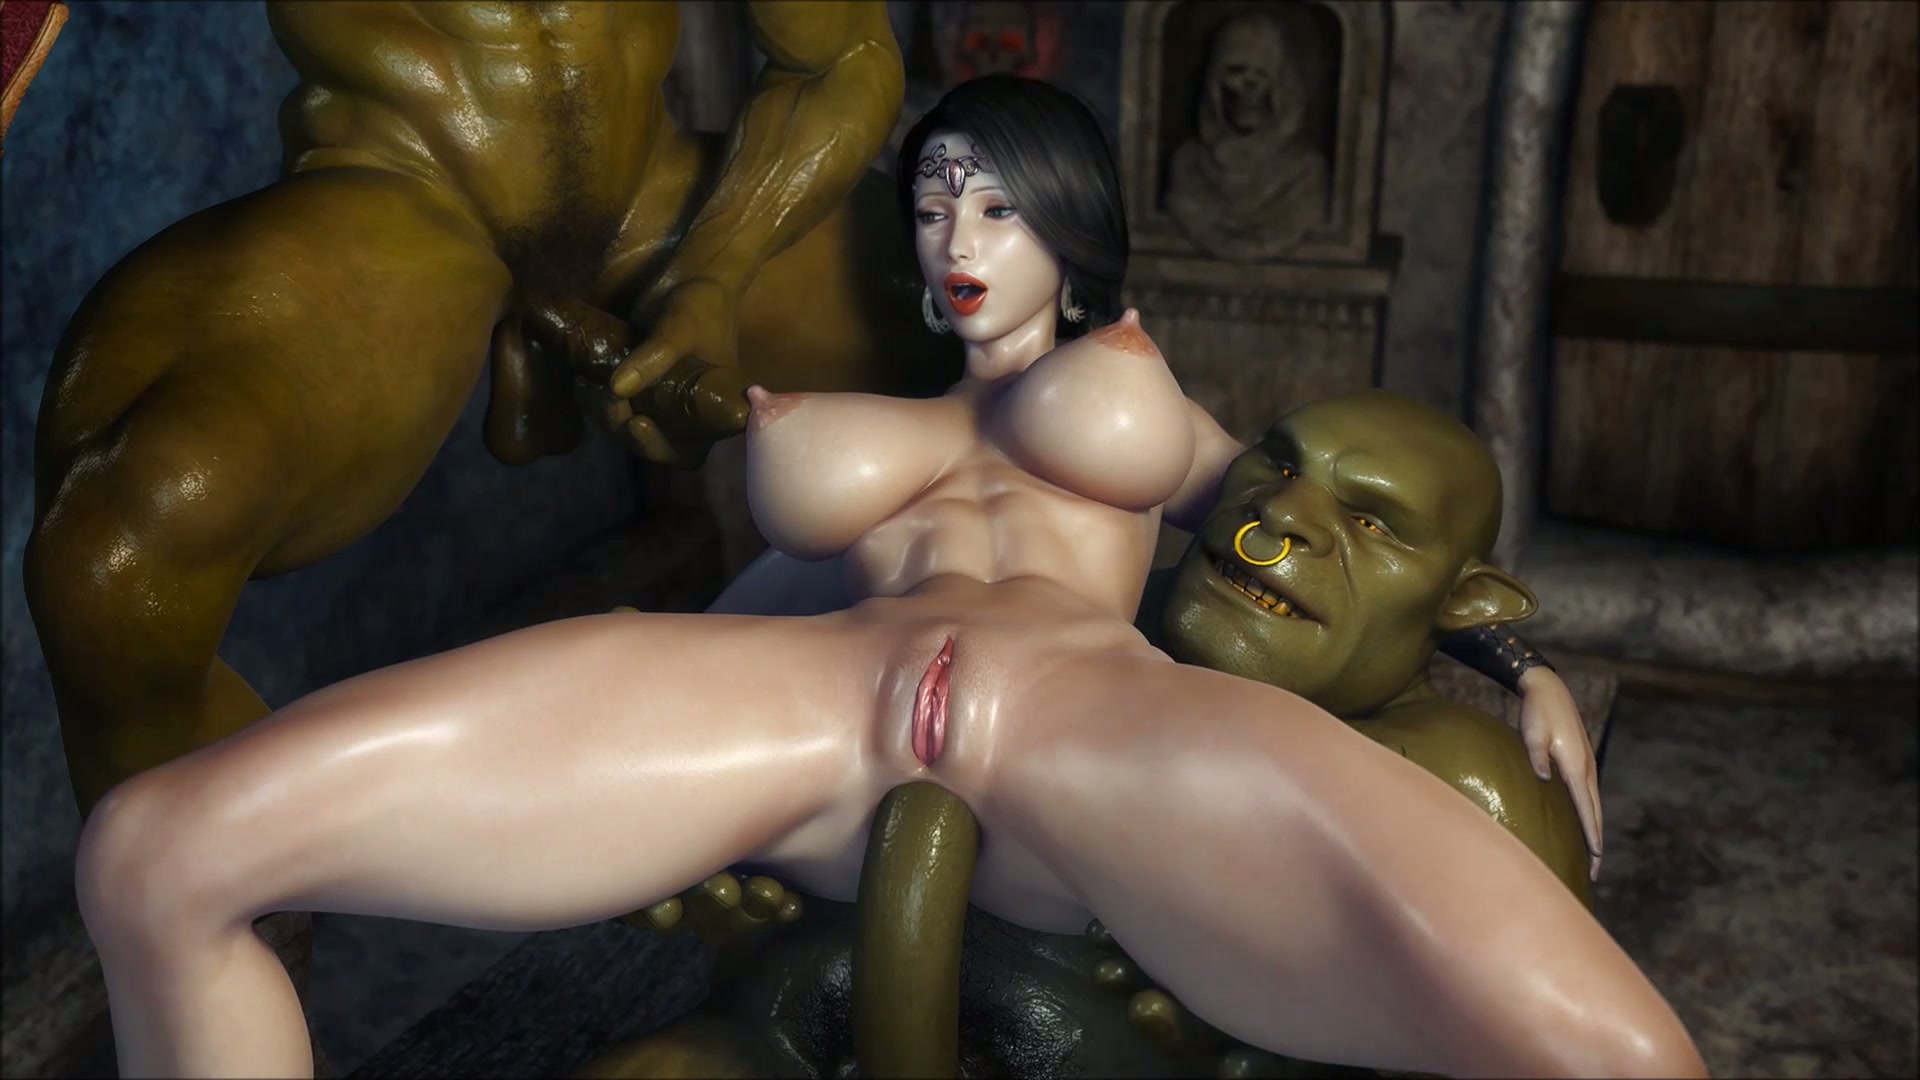 Monster anime hd porn videos xxx videos